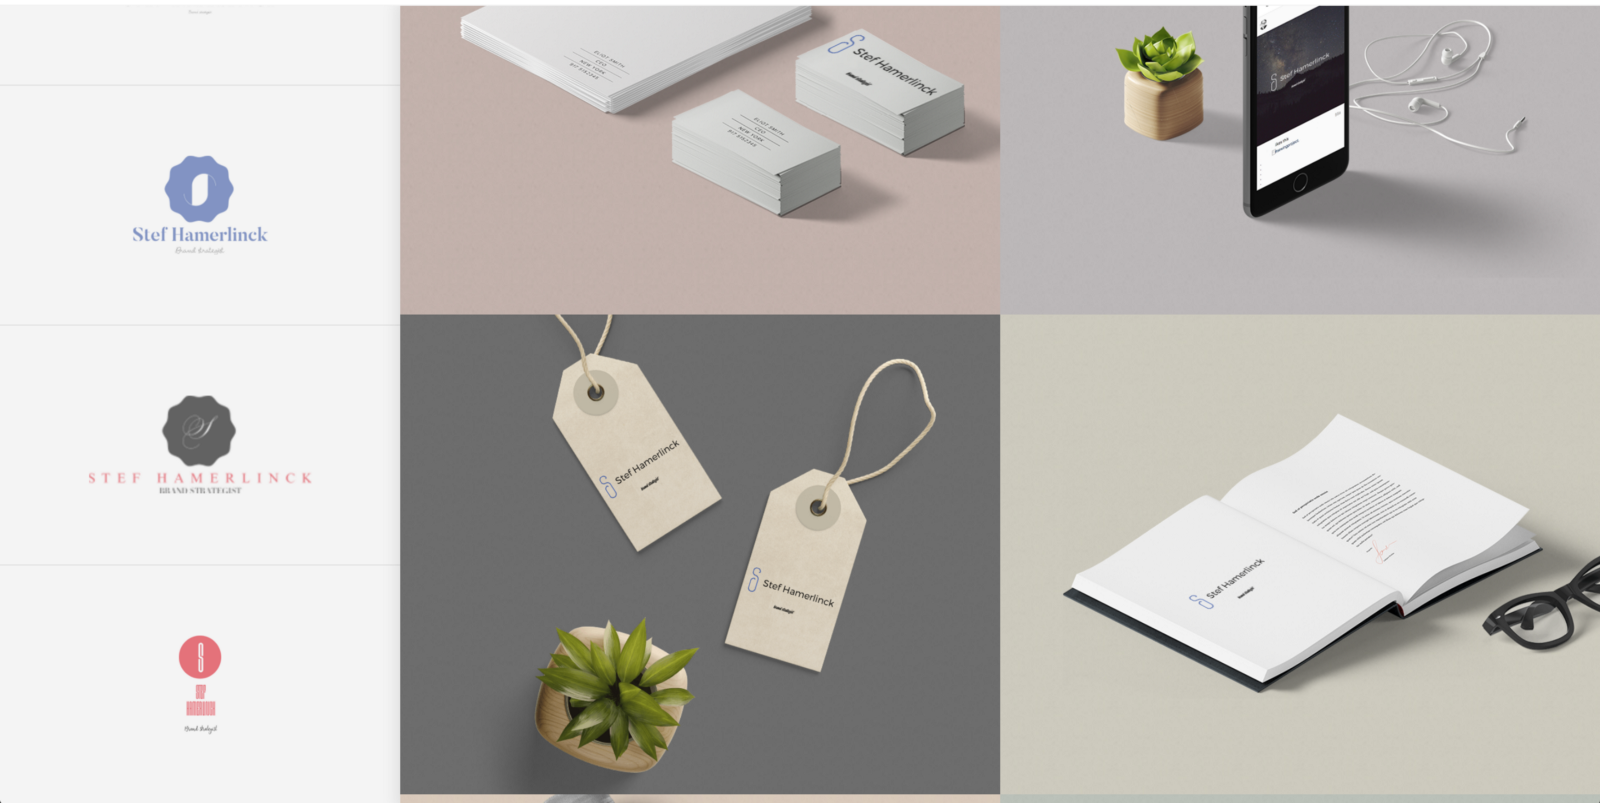 Tailor brands generate a 'full identity', complete with stationery and social media posts.